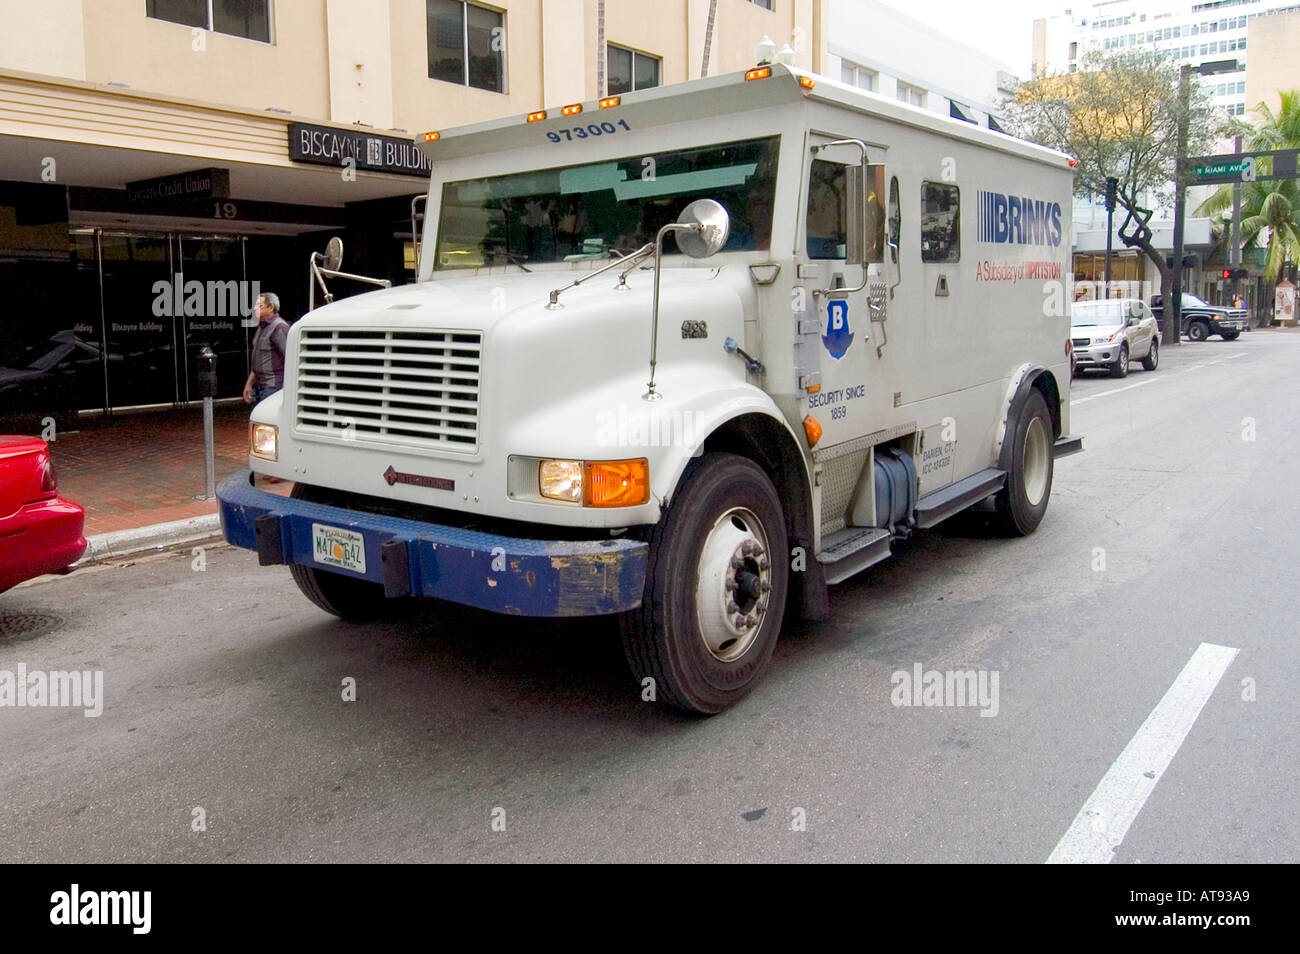 Miami florida street life brinks armored truck picks up and delivers cash money to banks and